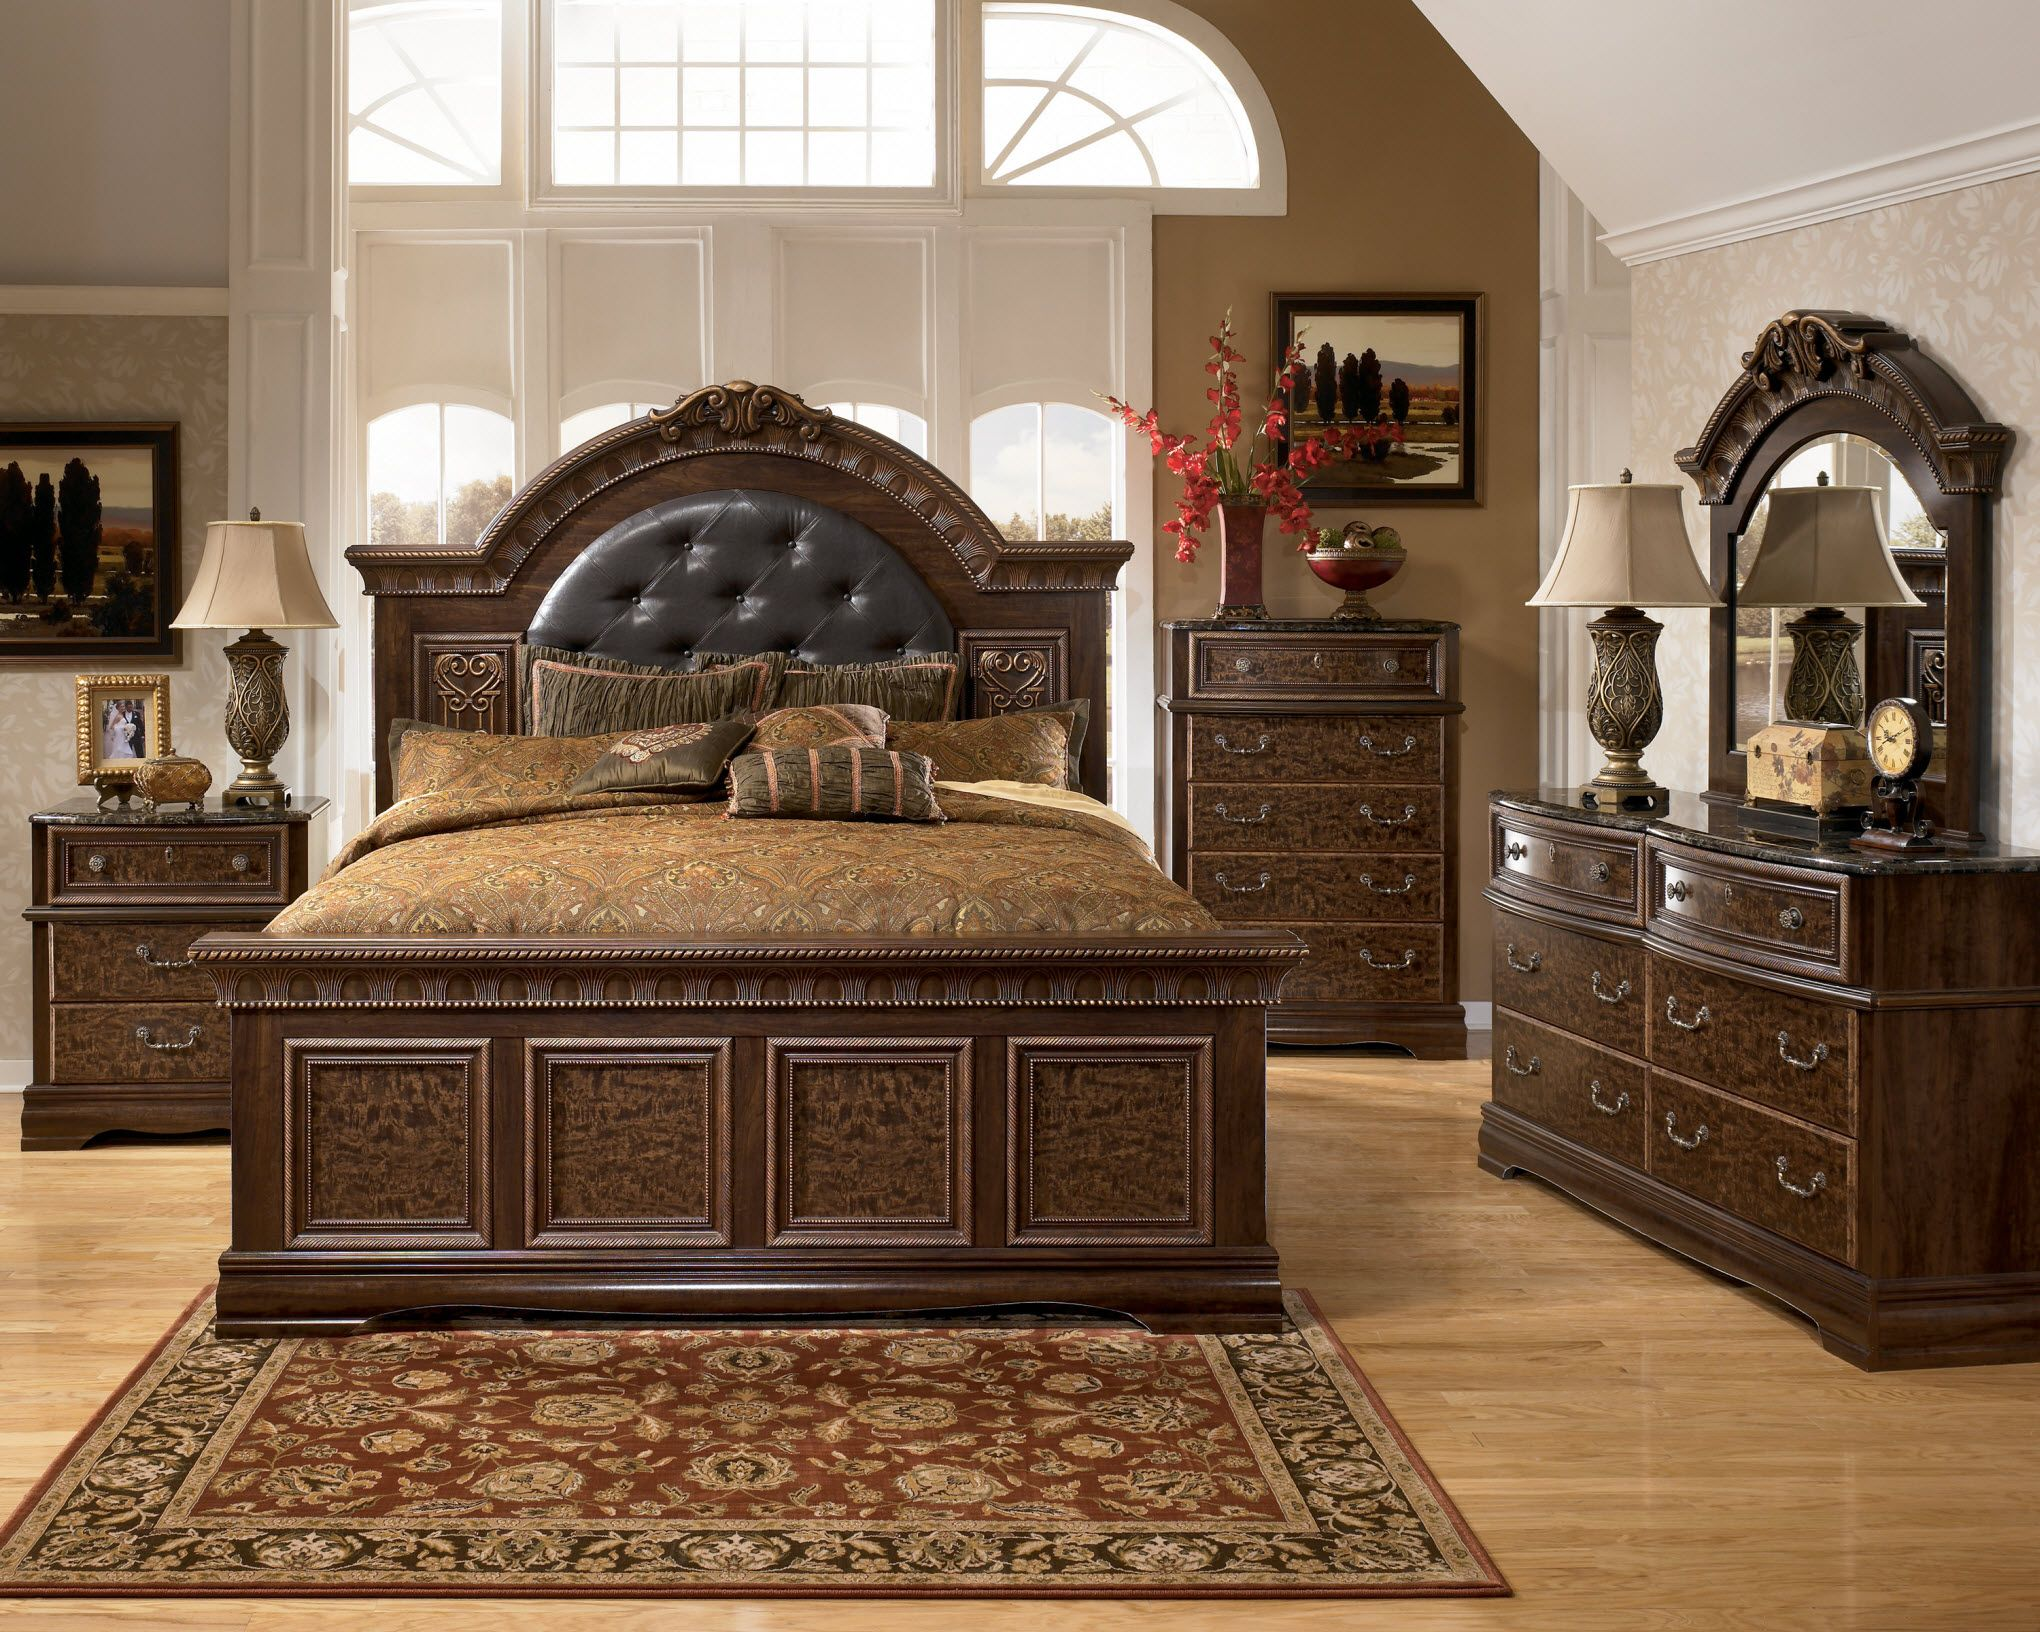 furniture design ideas girls bedroom sets. liberty lagana furniture in meriden ct the design ideas girls bedroom sets g